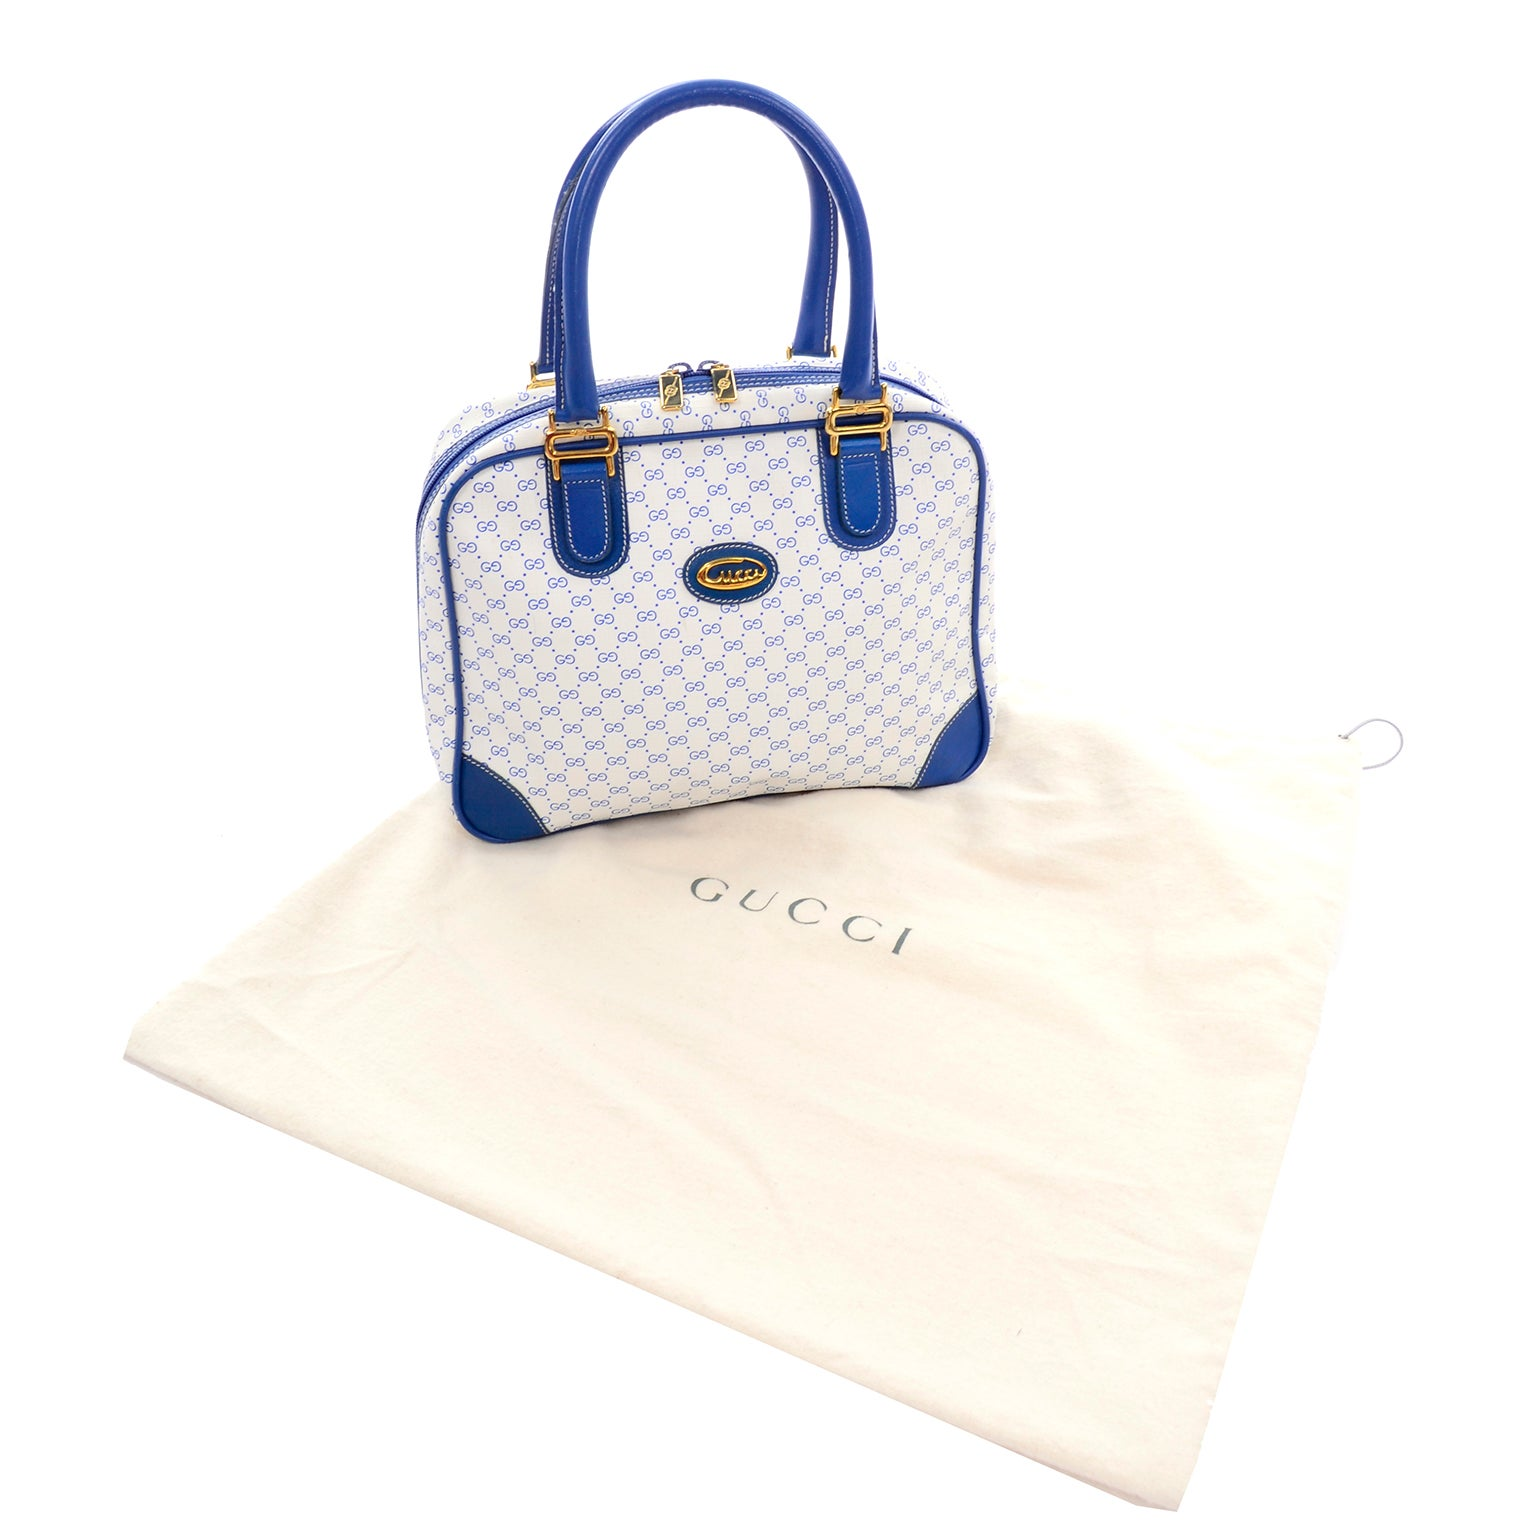 4185c7b67 Vintage Gucci Handbag Monogram Boston Bag in Bright Blue and White W/  Script Logo For Sale at 1stdibs